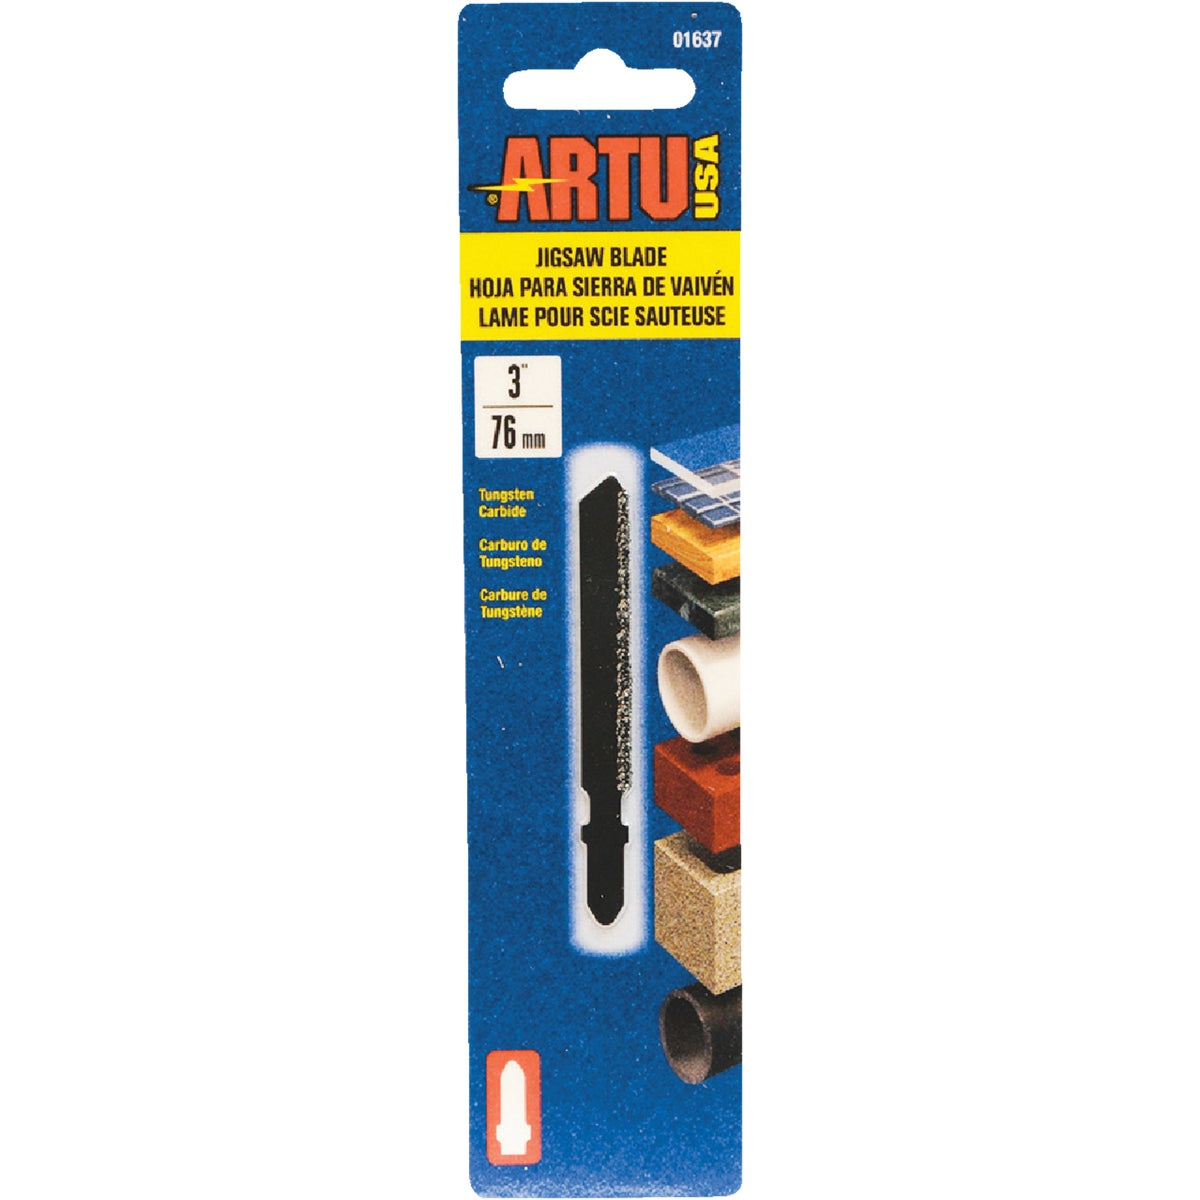 "3"" TC JIGSAW BLADE - 01637 by Artu Usa Inc"